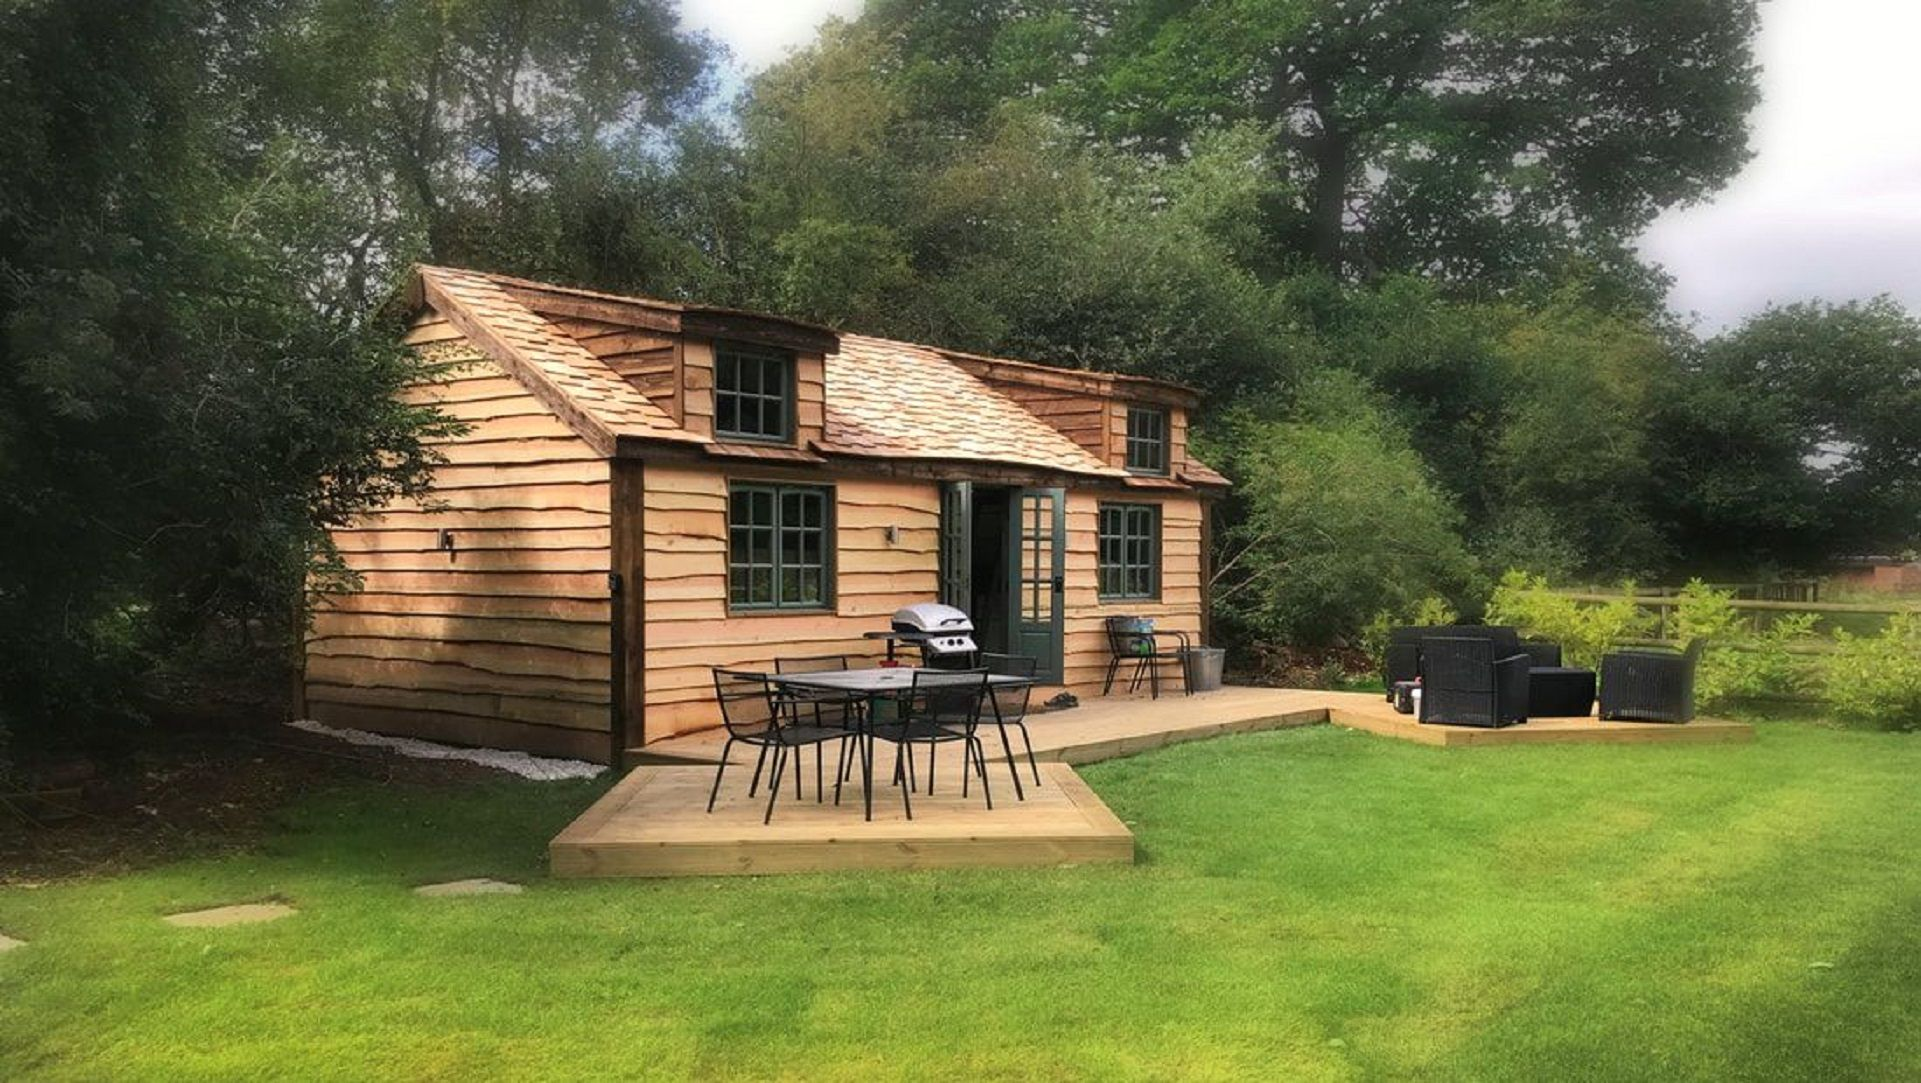 Best Tucked Away In The Hills Of Westerham Near Biggen Hill Sits The Secret Cottage 4M X 7M On A 400 x 300